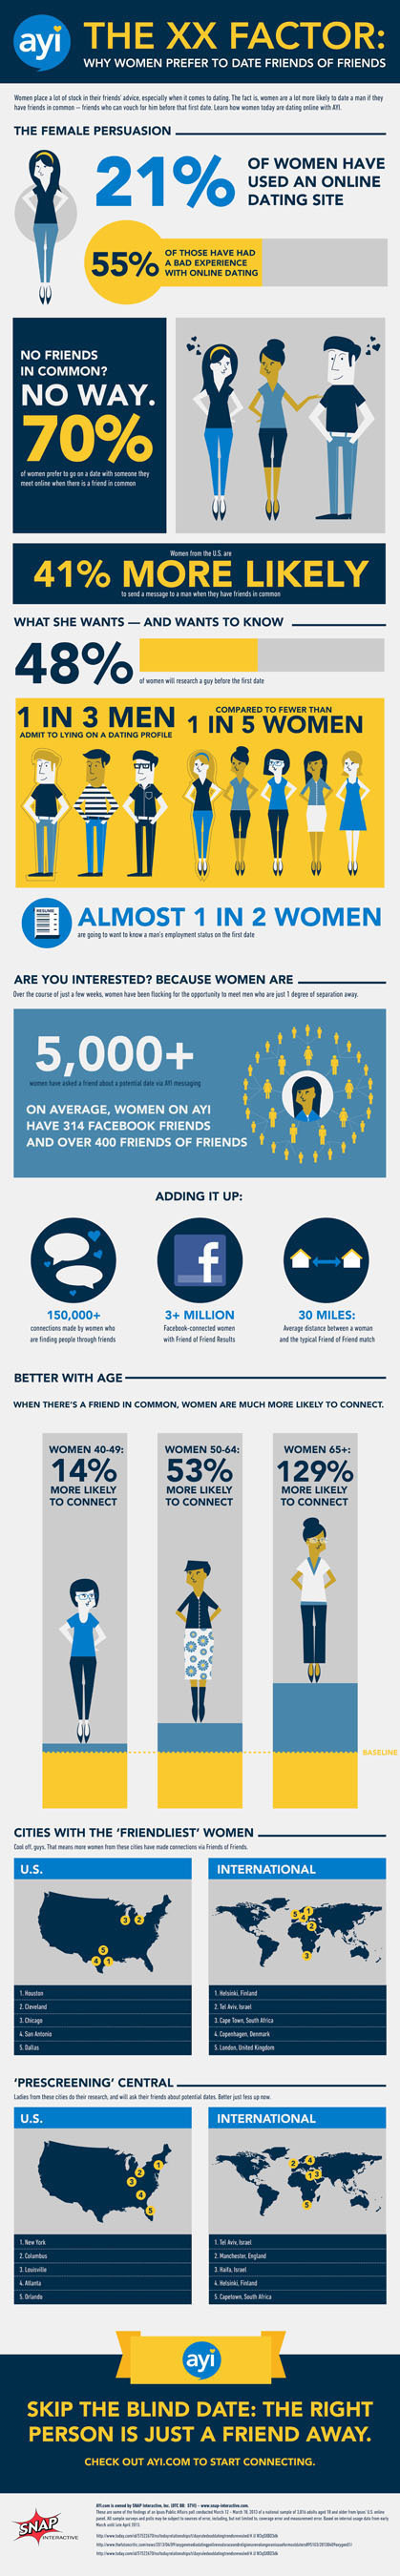 The XX Factor: Why Women Prefer to Date Friends of Friends.  (PRNewsFoto/SNAP Interactive, Inc.)